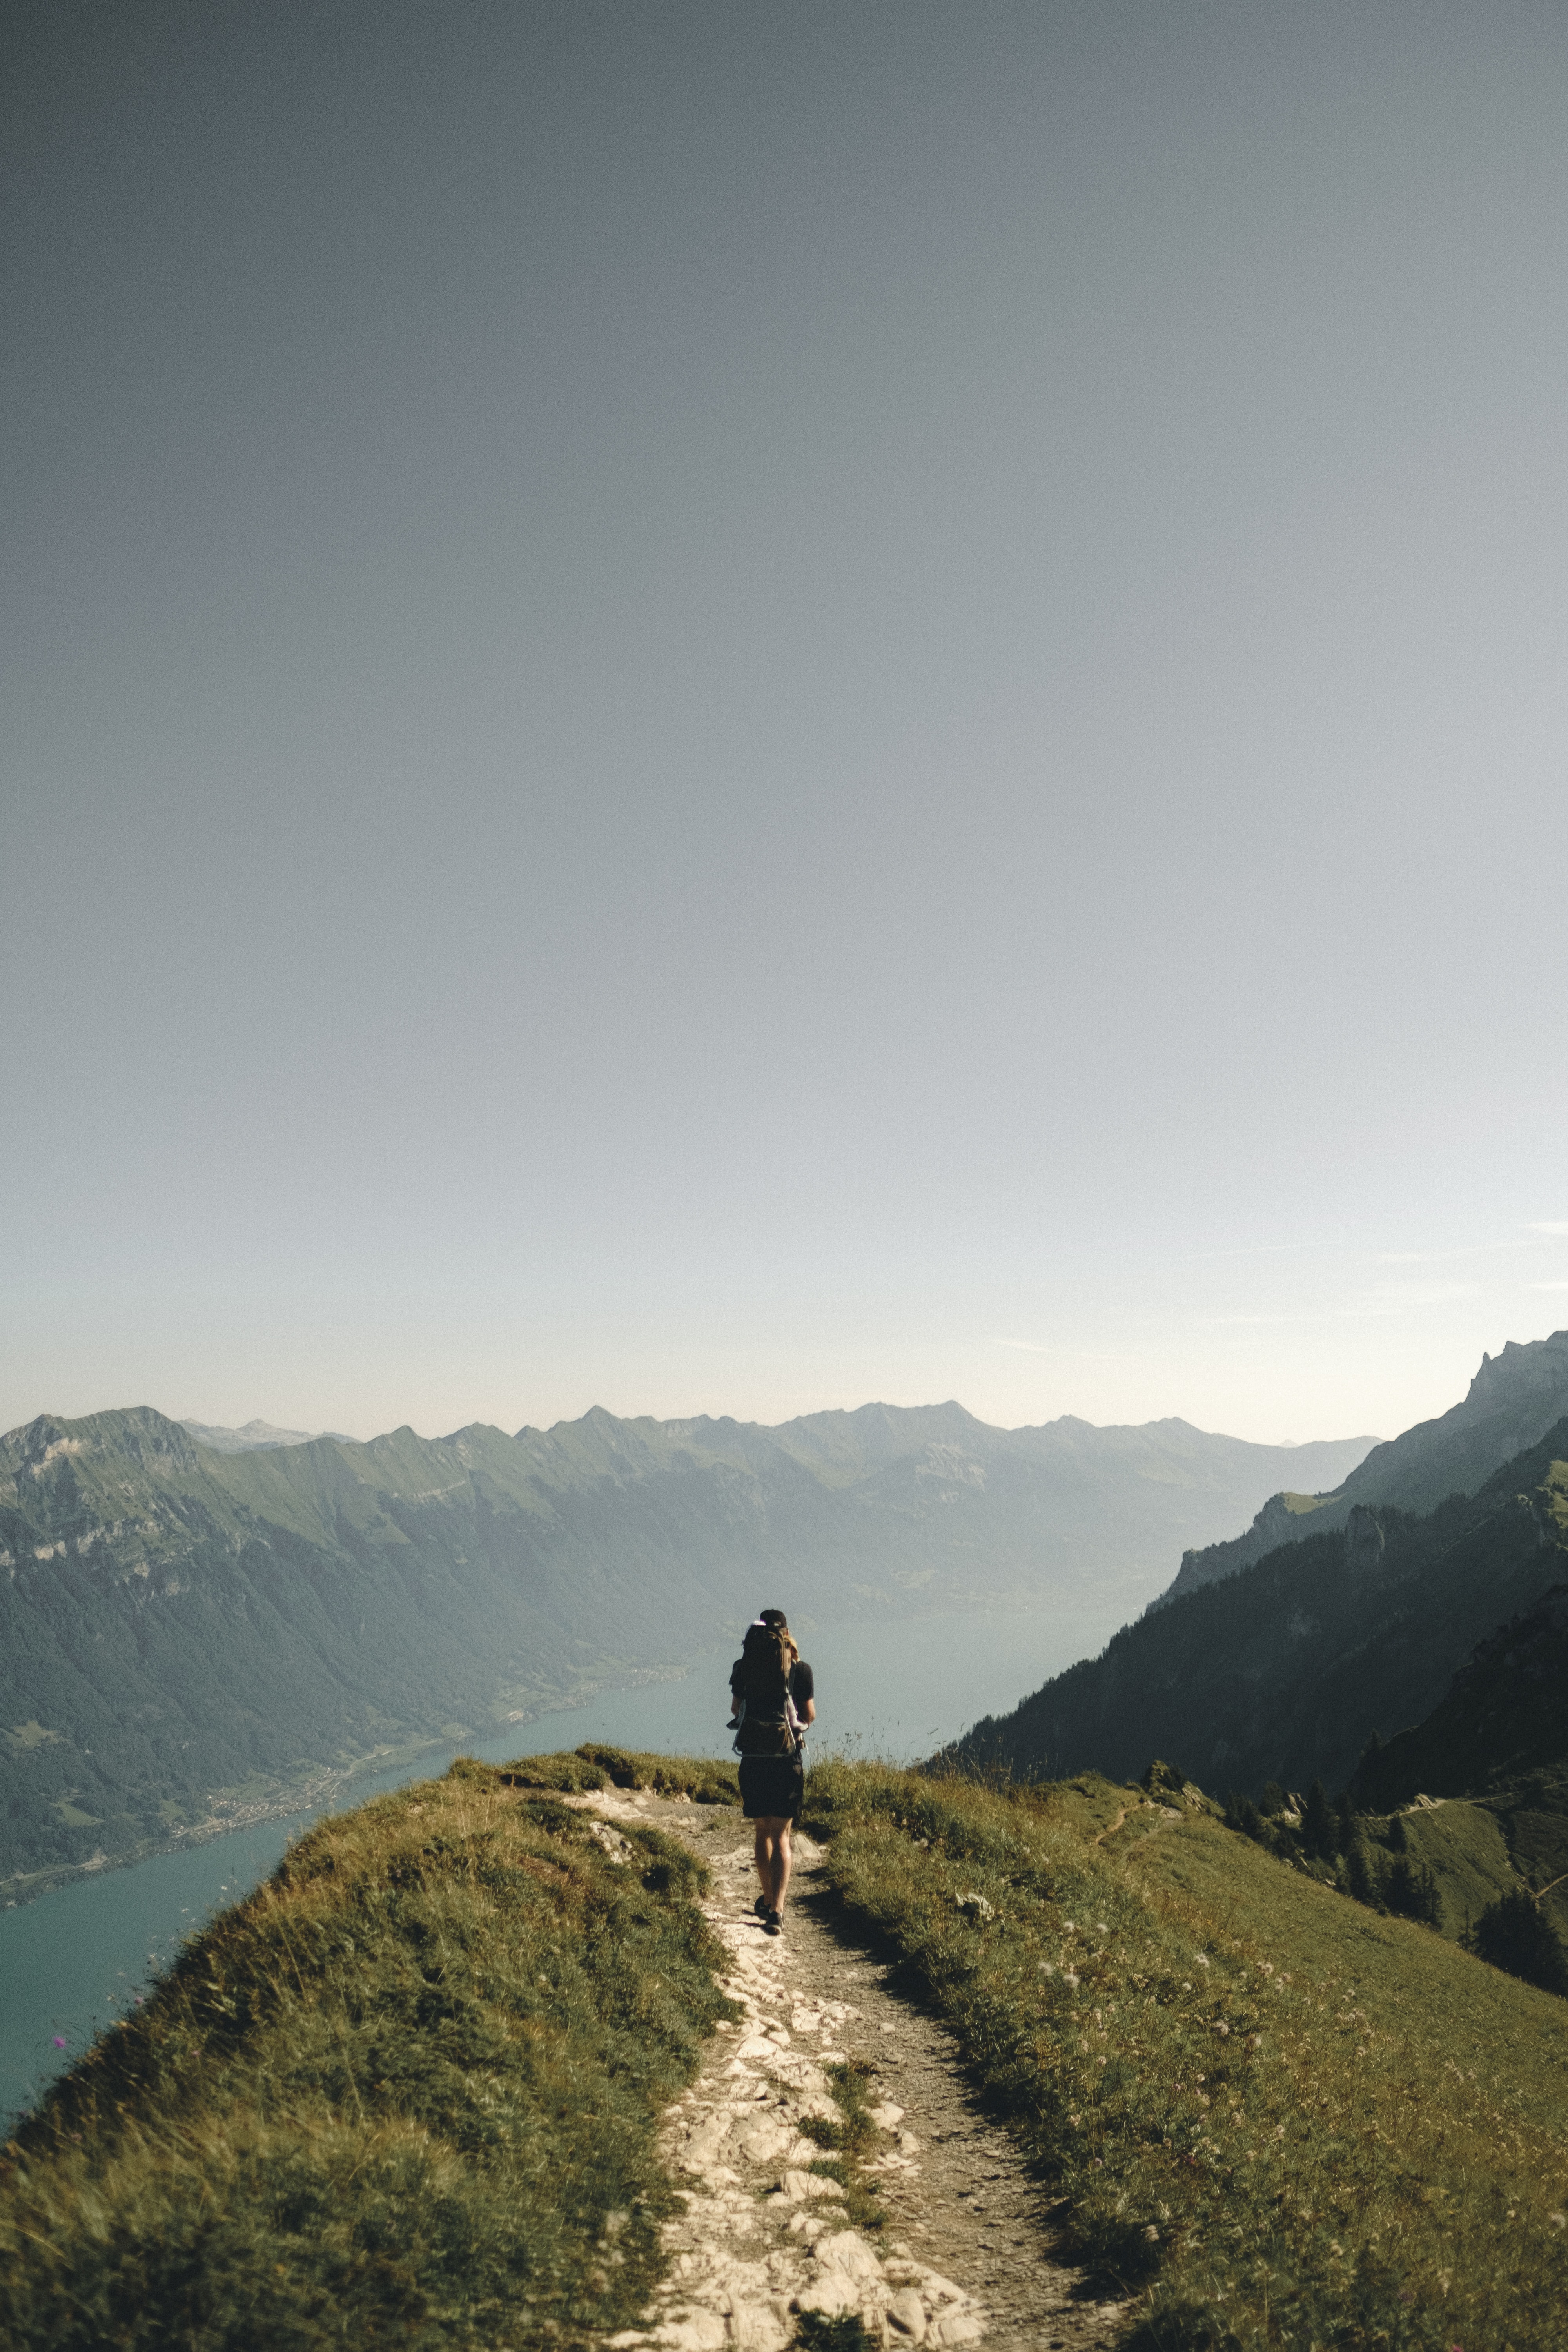 person hiking above mountain overlooking river